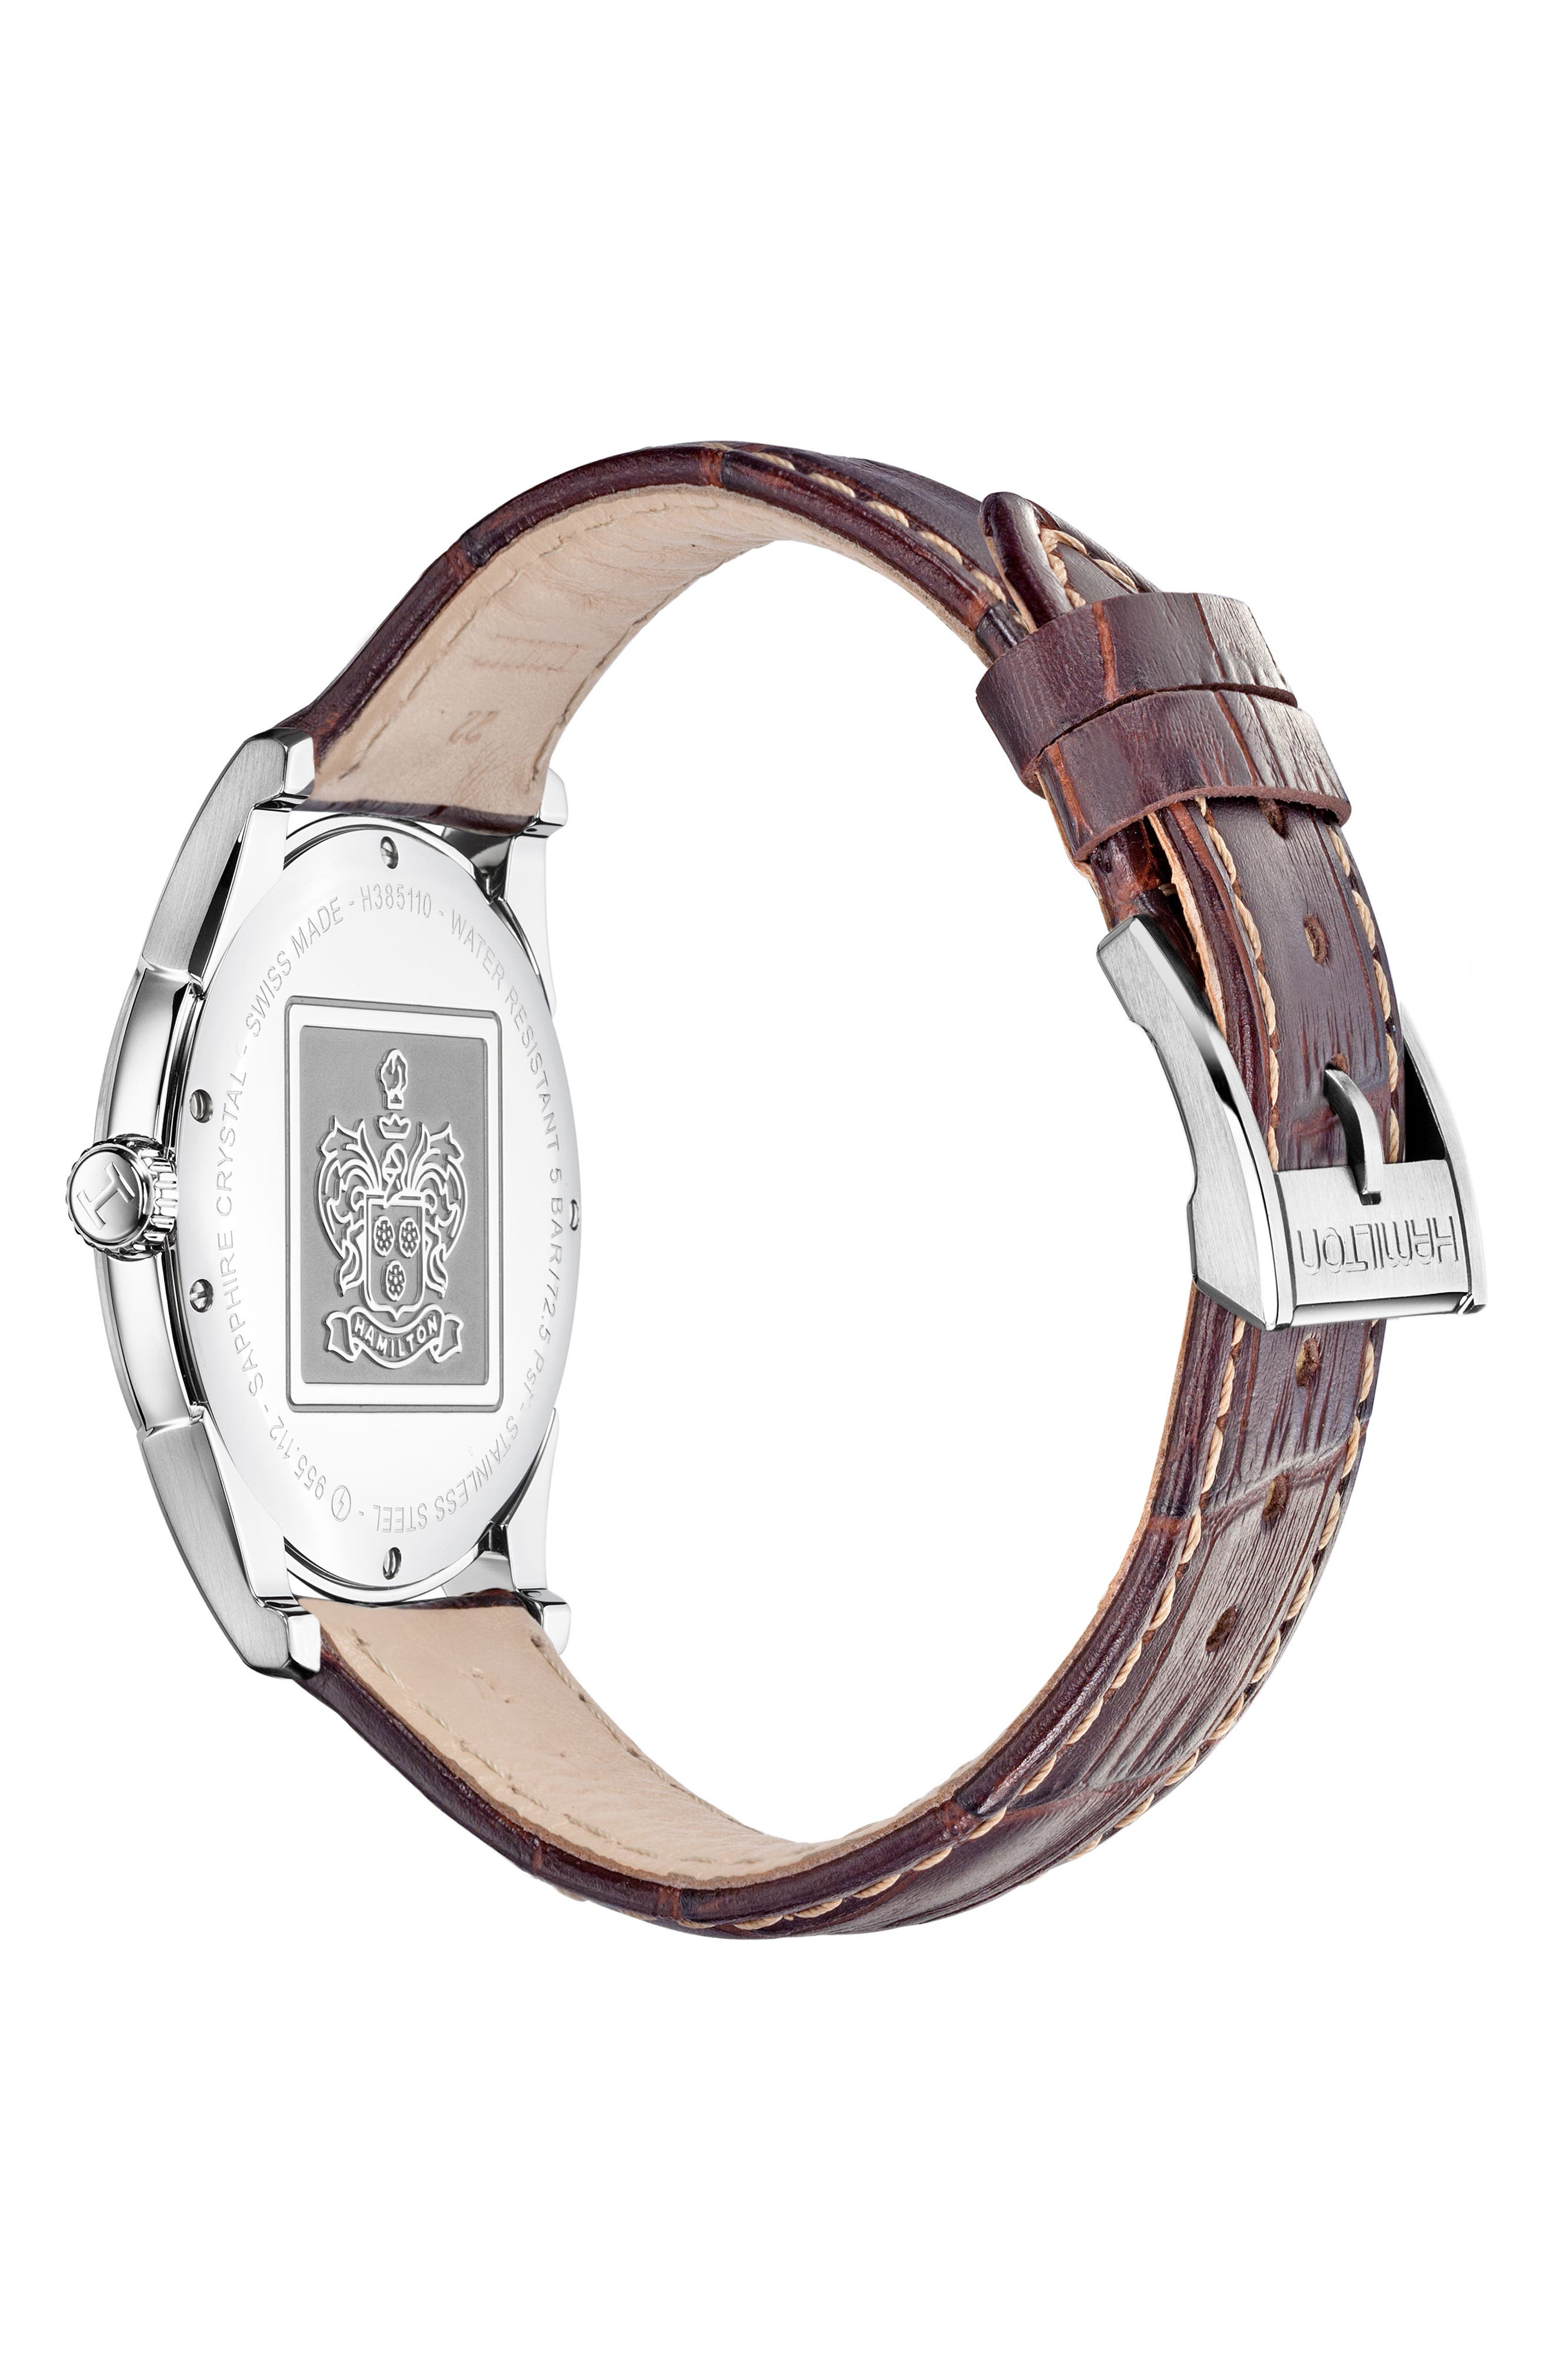 HAMILTON, Jazzmaster Thinline Leather Strap Watch, 42mm, Alternate thumbnail 3, color, BROWN/ SILVER